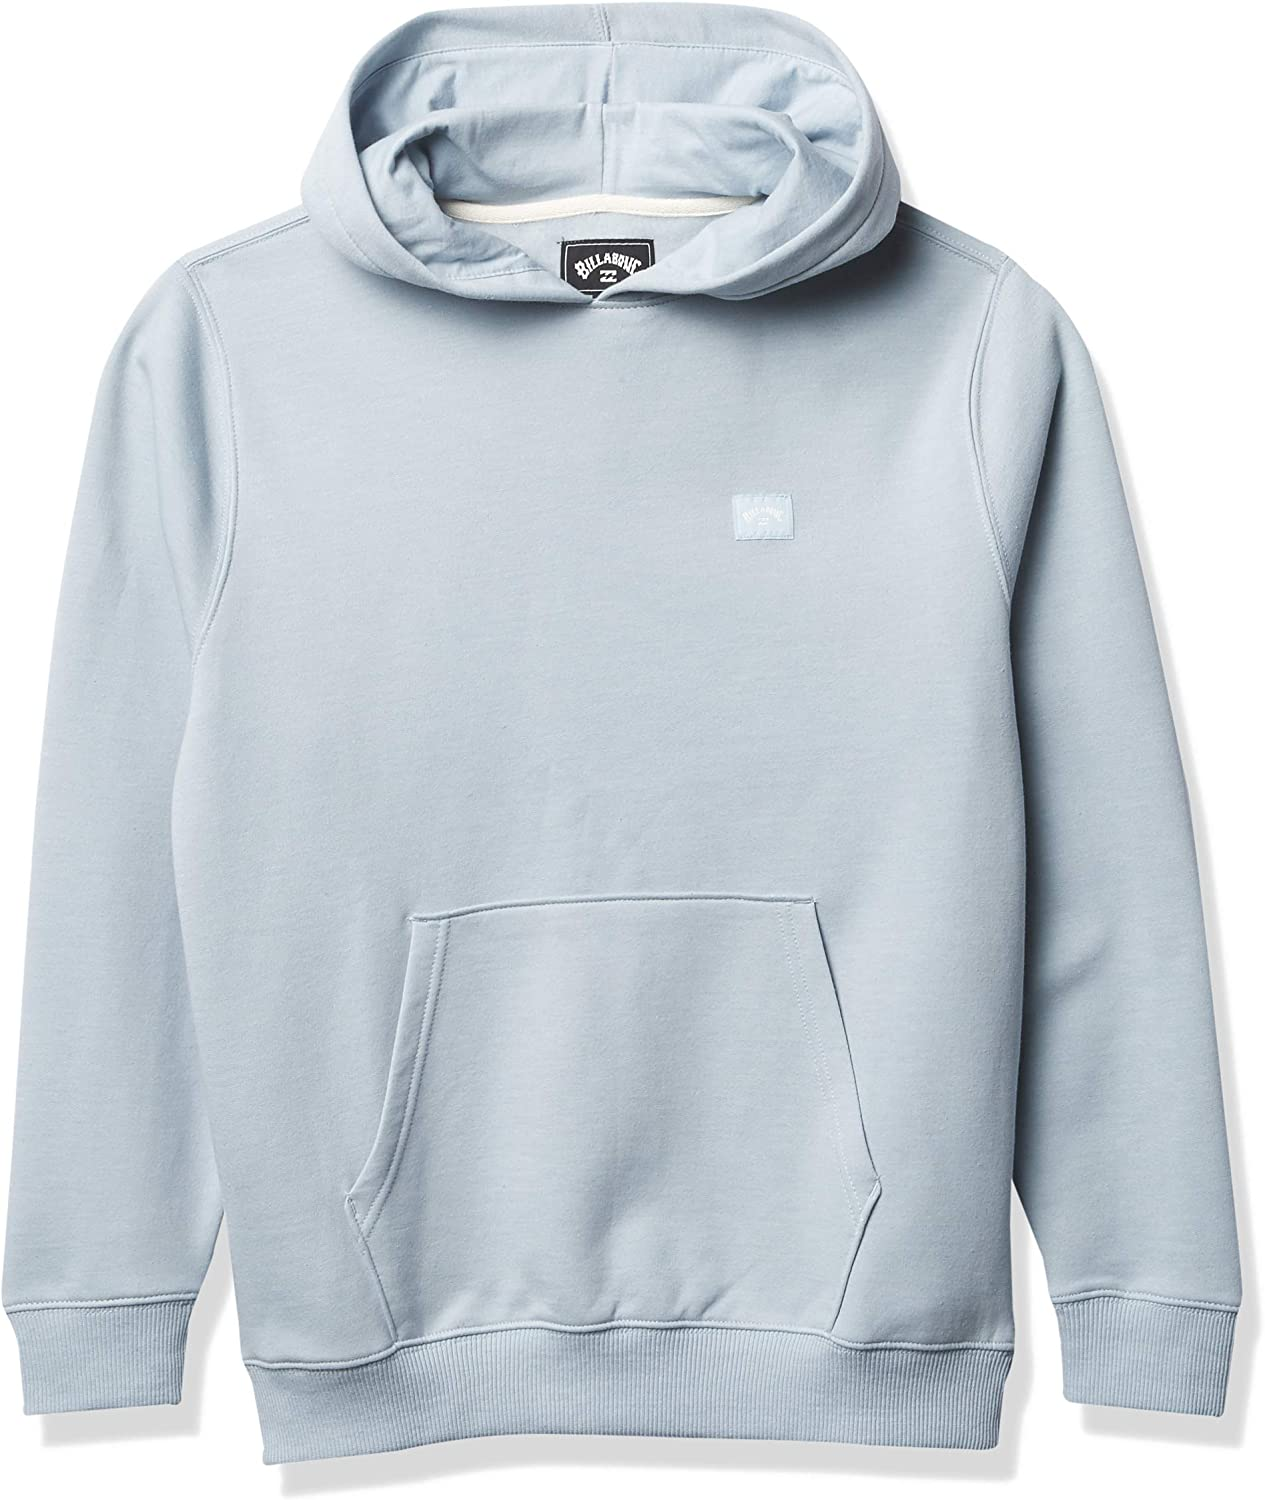 Billabong Boys' All Day discount A surprise price is realized Pullover Fleece Sweatshirt Hoodie